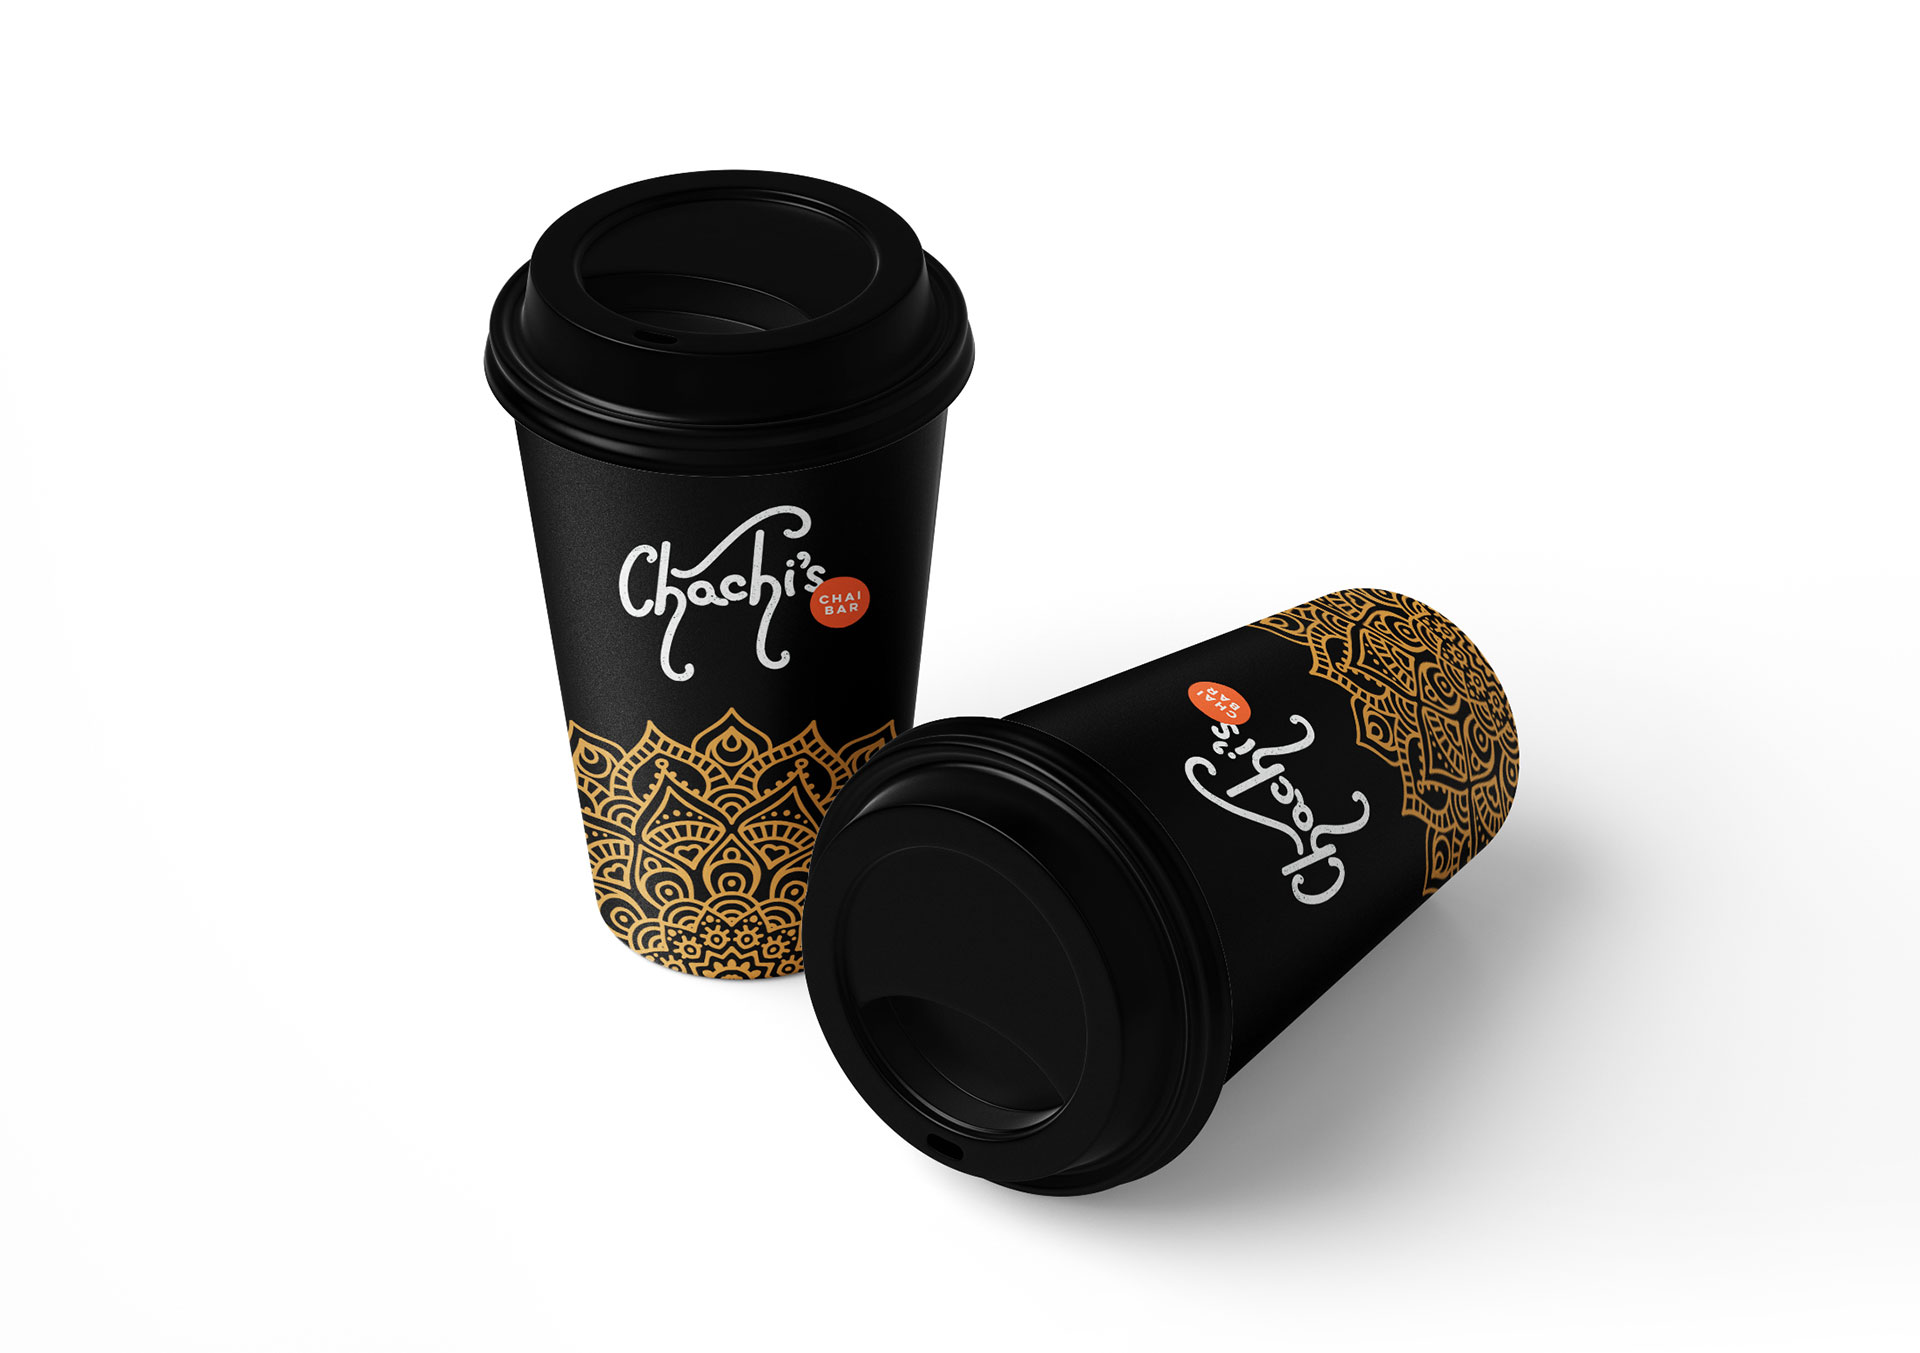 chachi's cups